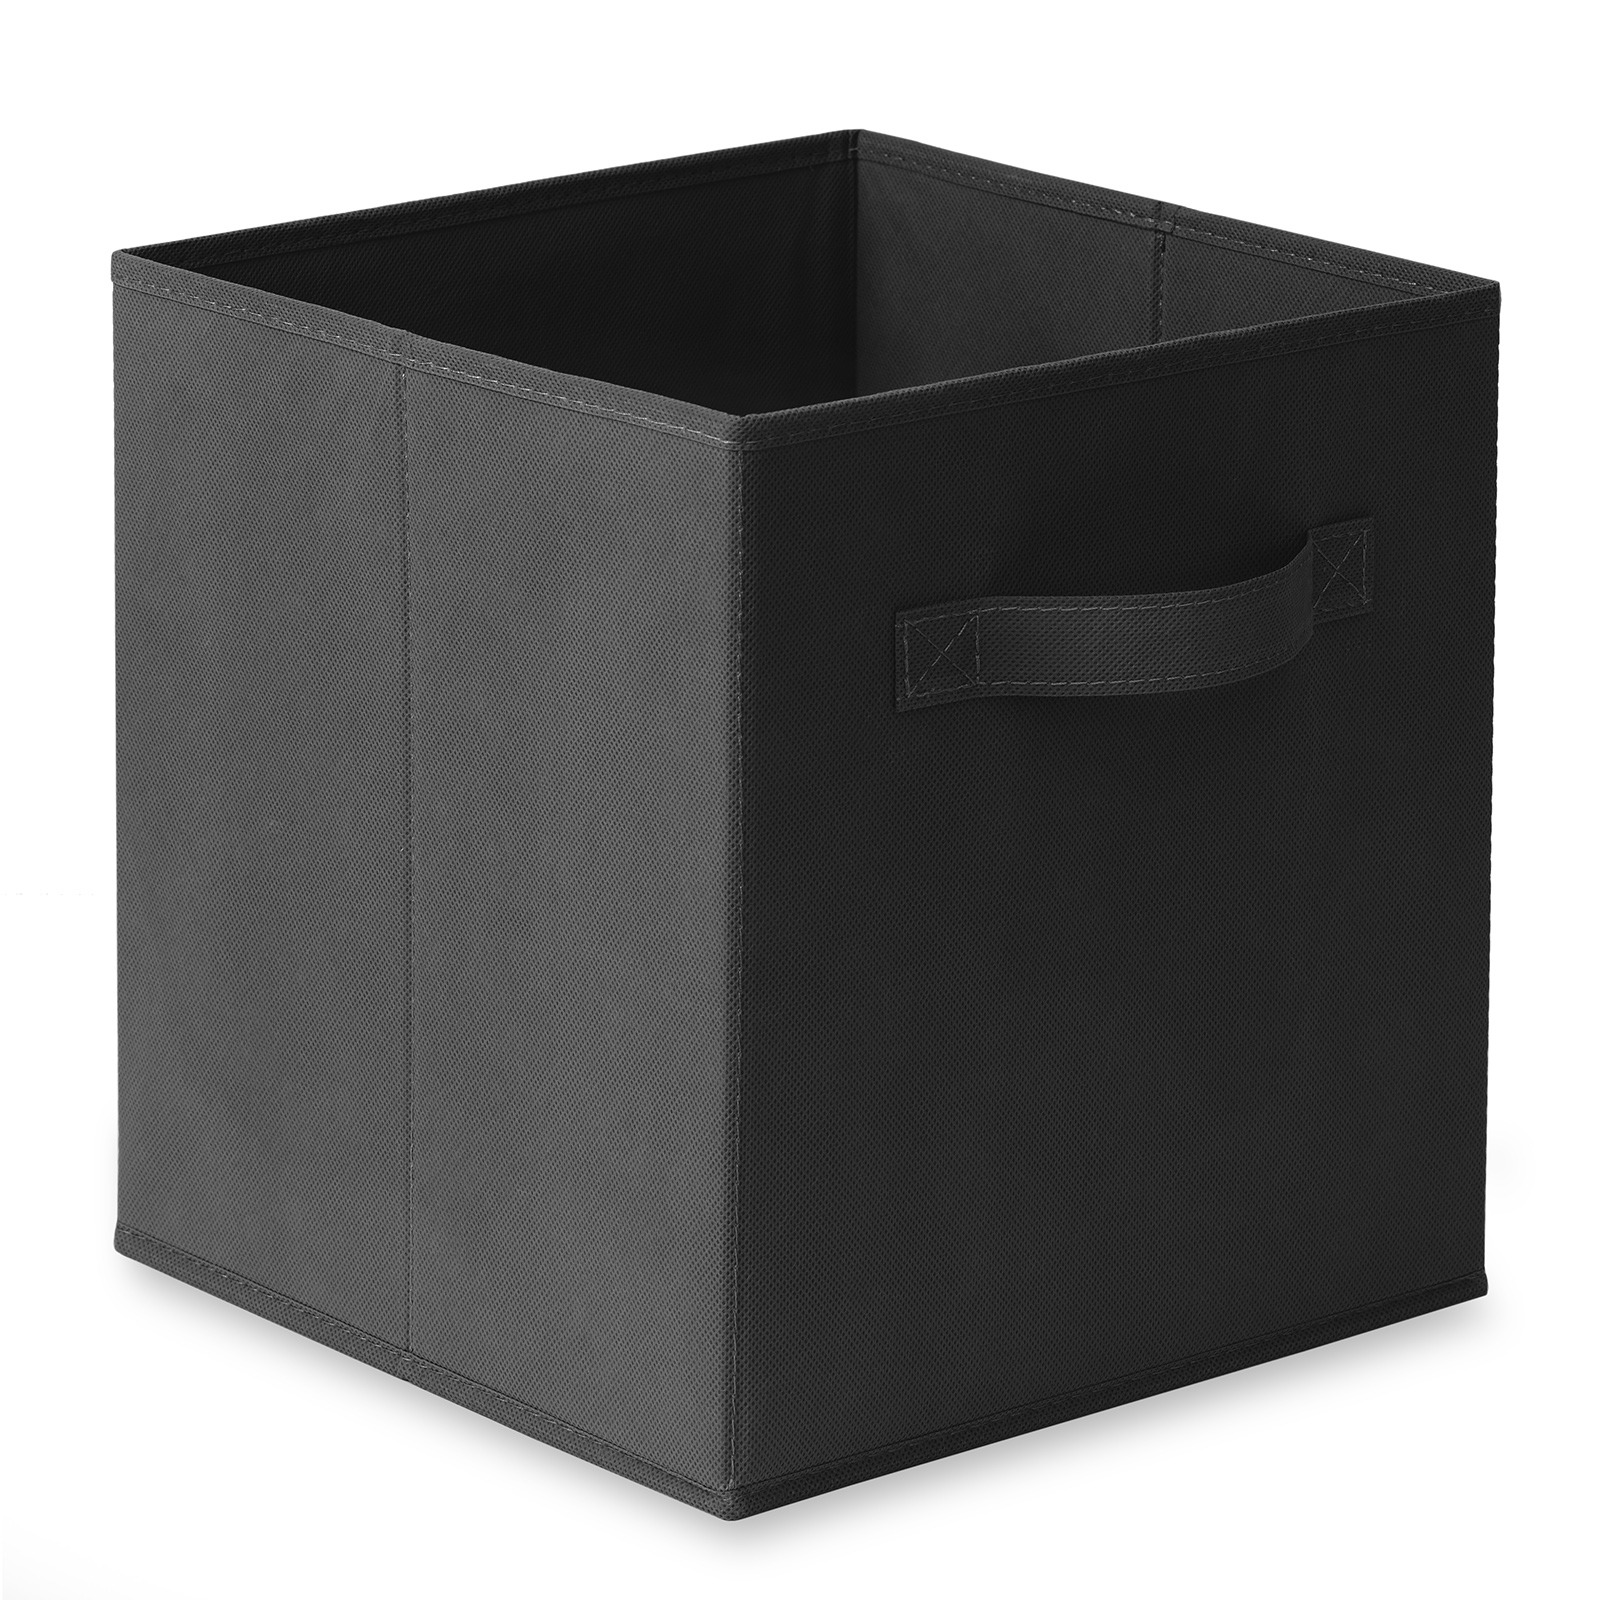 6-Collapsible-Foldable-Cloth-Fabric-Cubby-Cube-Storage-Bins-Baskets-for-Shelves thumbnail 10